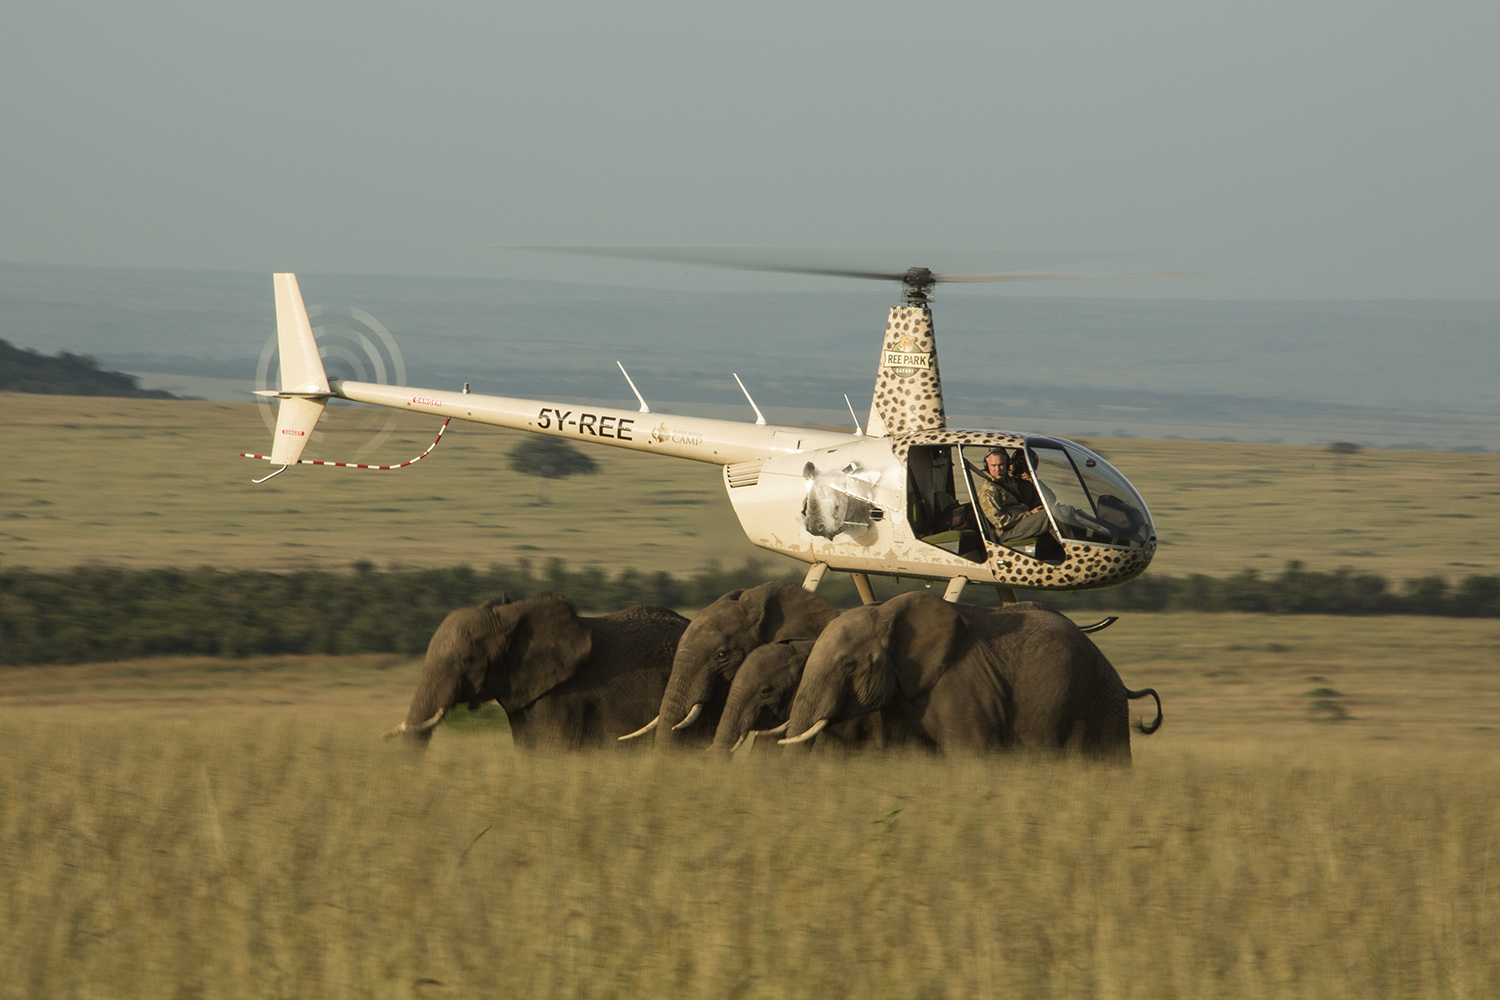 Helicopter side on with elephants